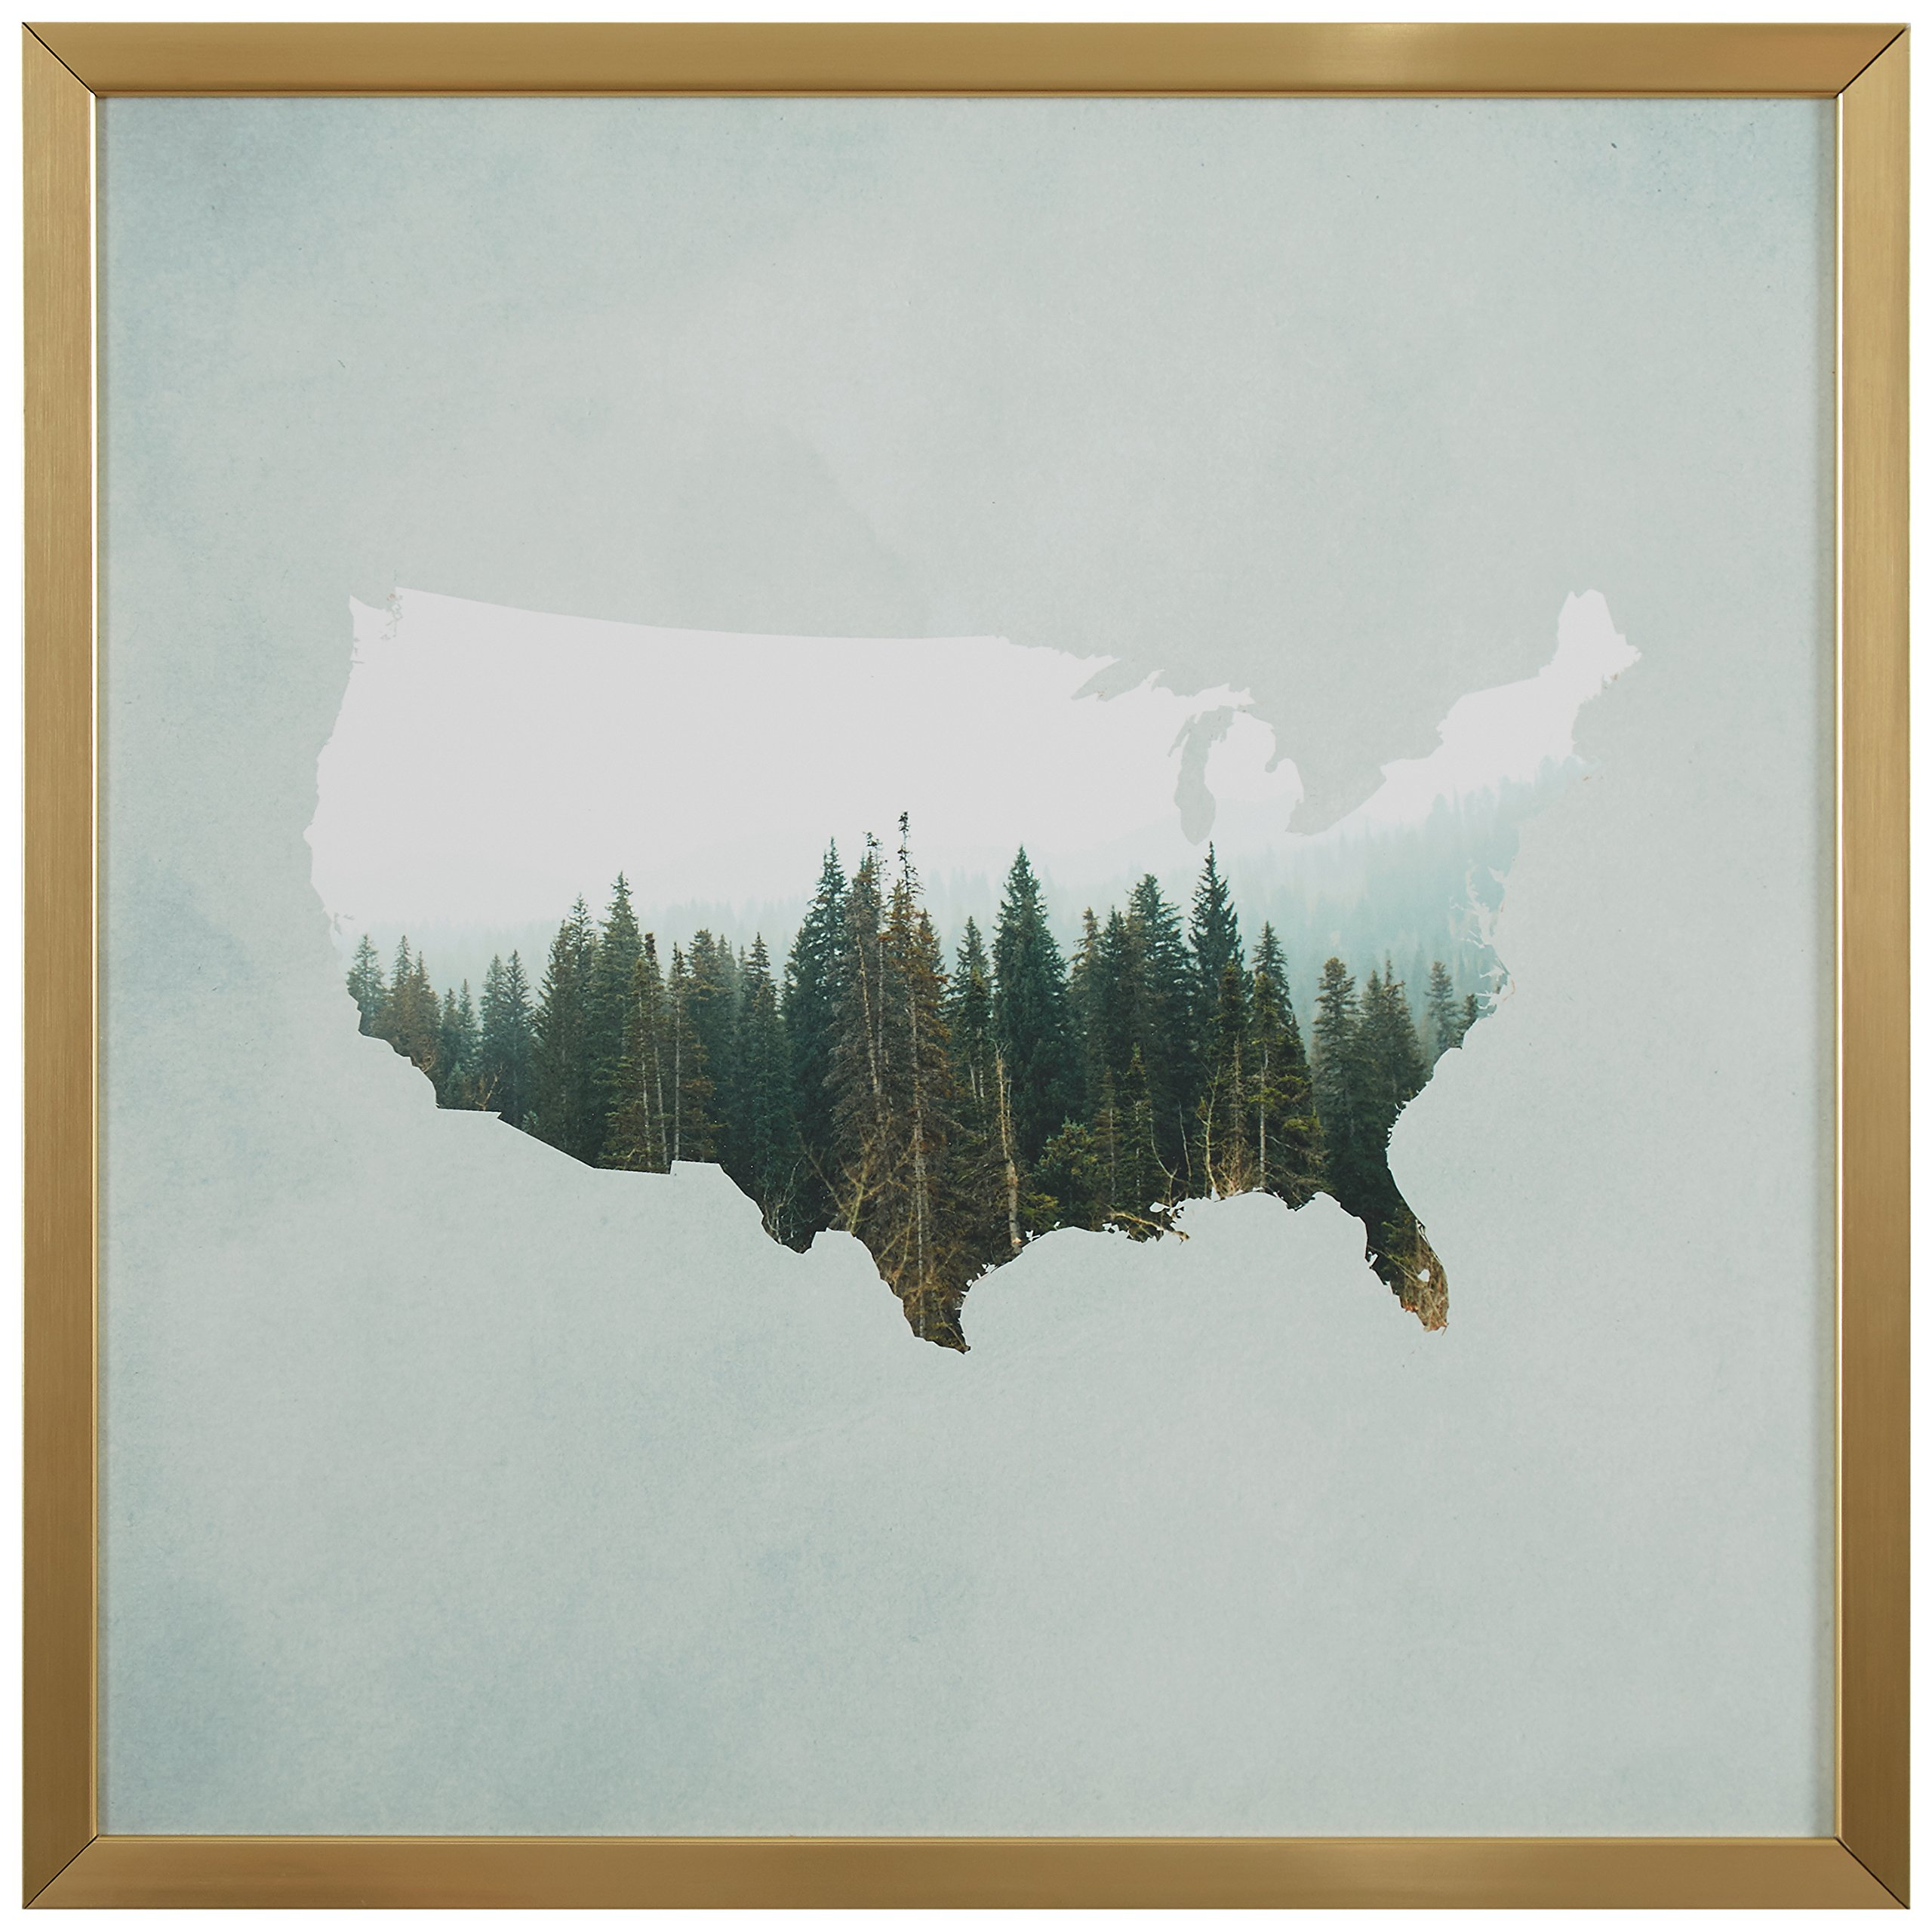 American Forest Map Print in Gold Wood Frame, 12'' x 12''